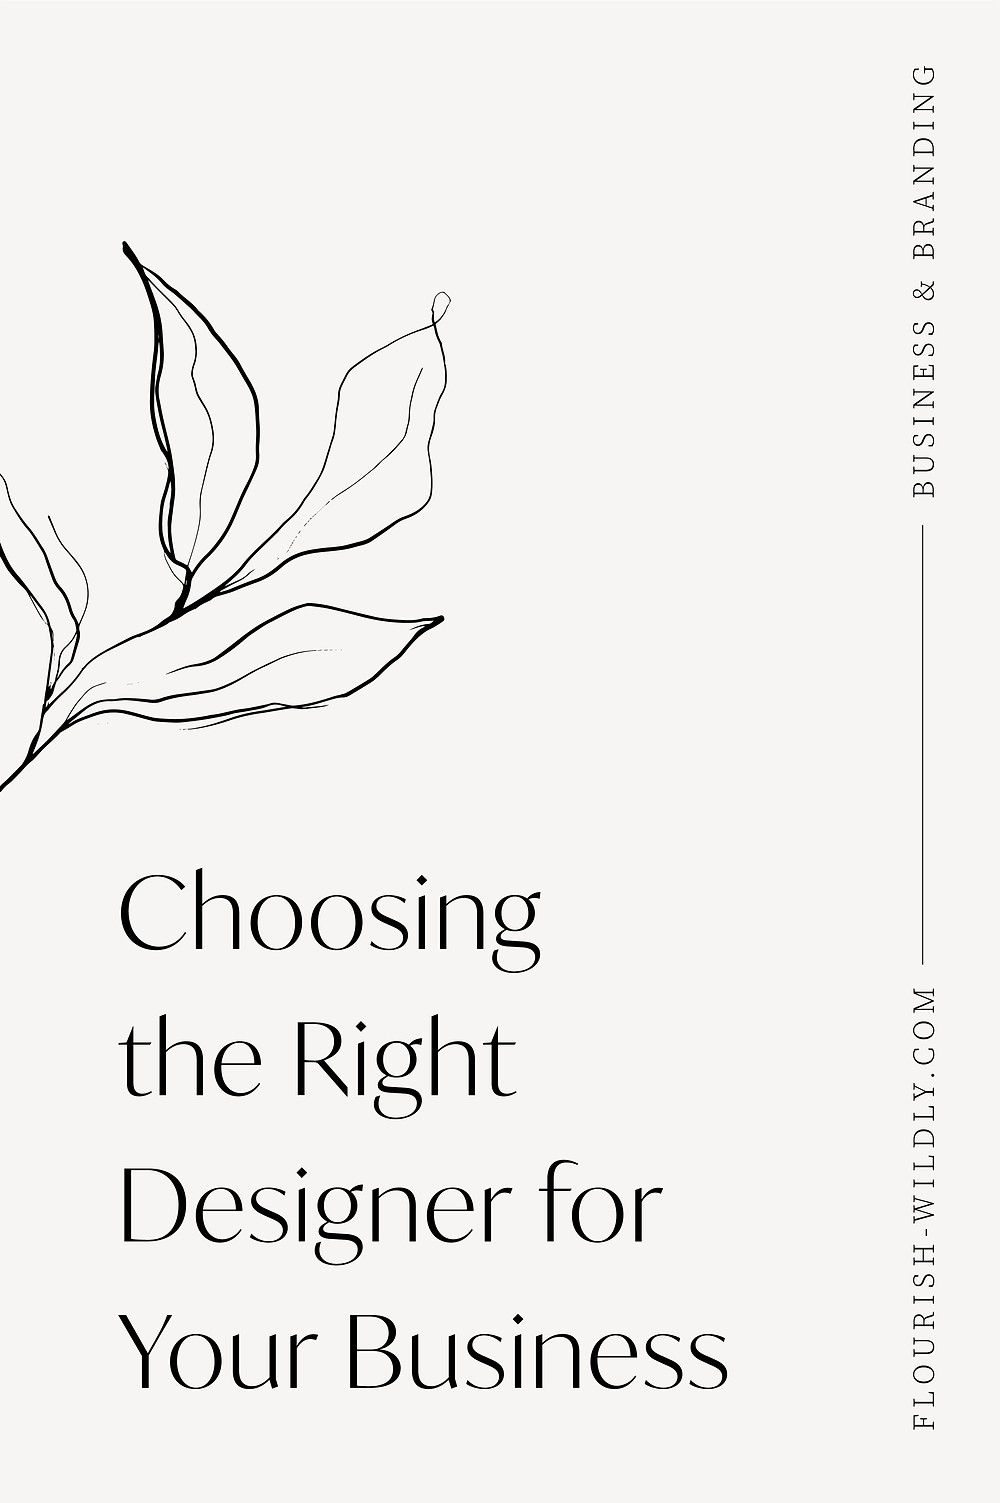 How to choose the right designer for your business needs, a blog by Flourish Wildly design studio